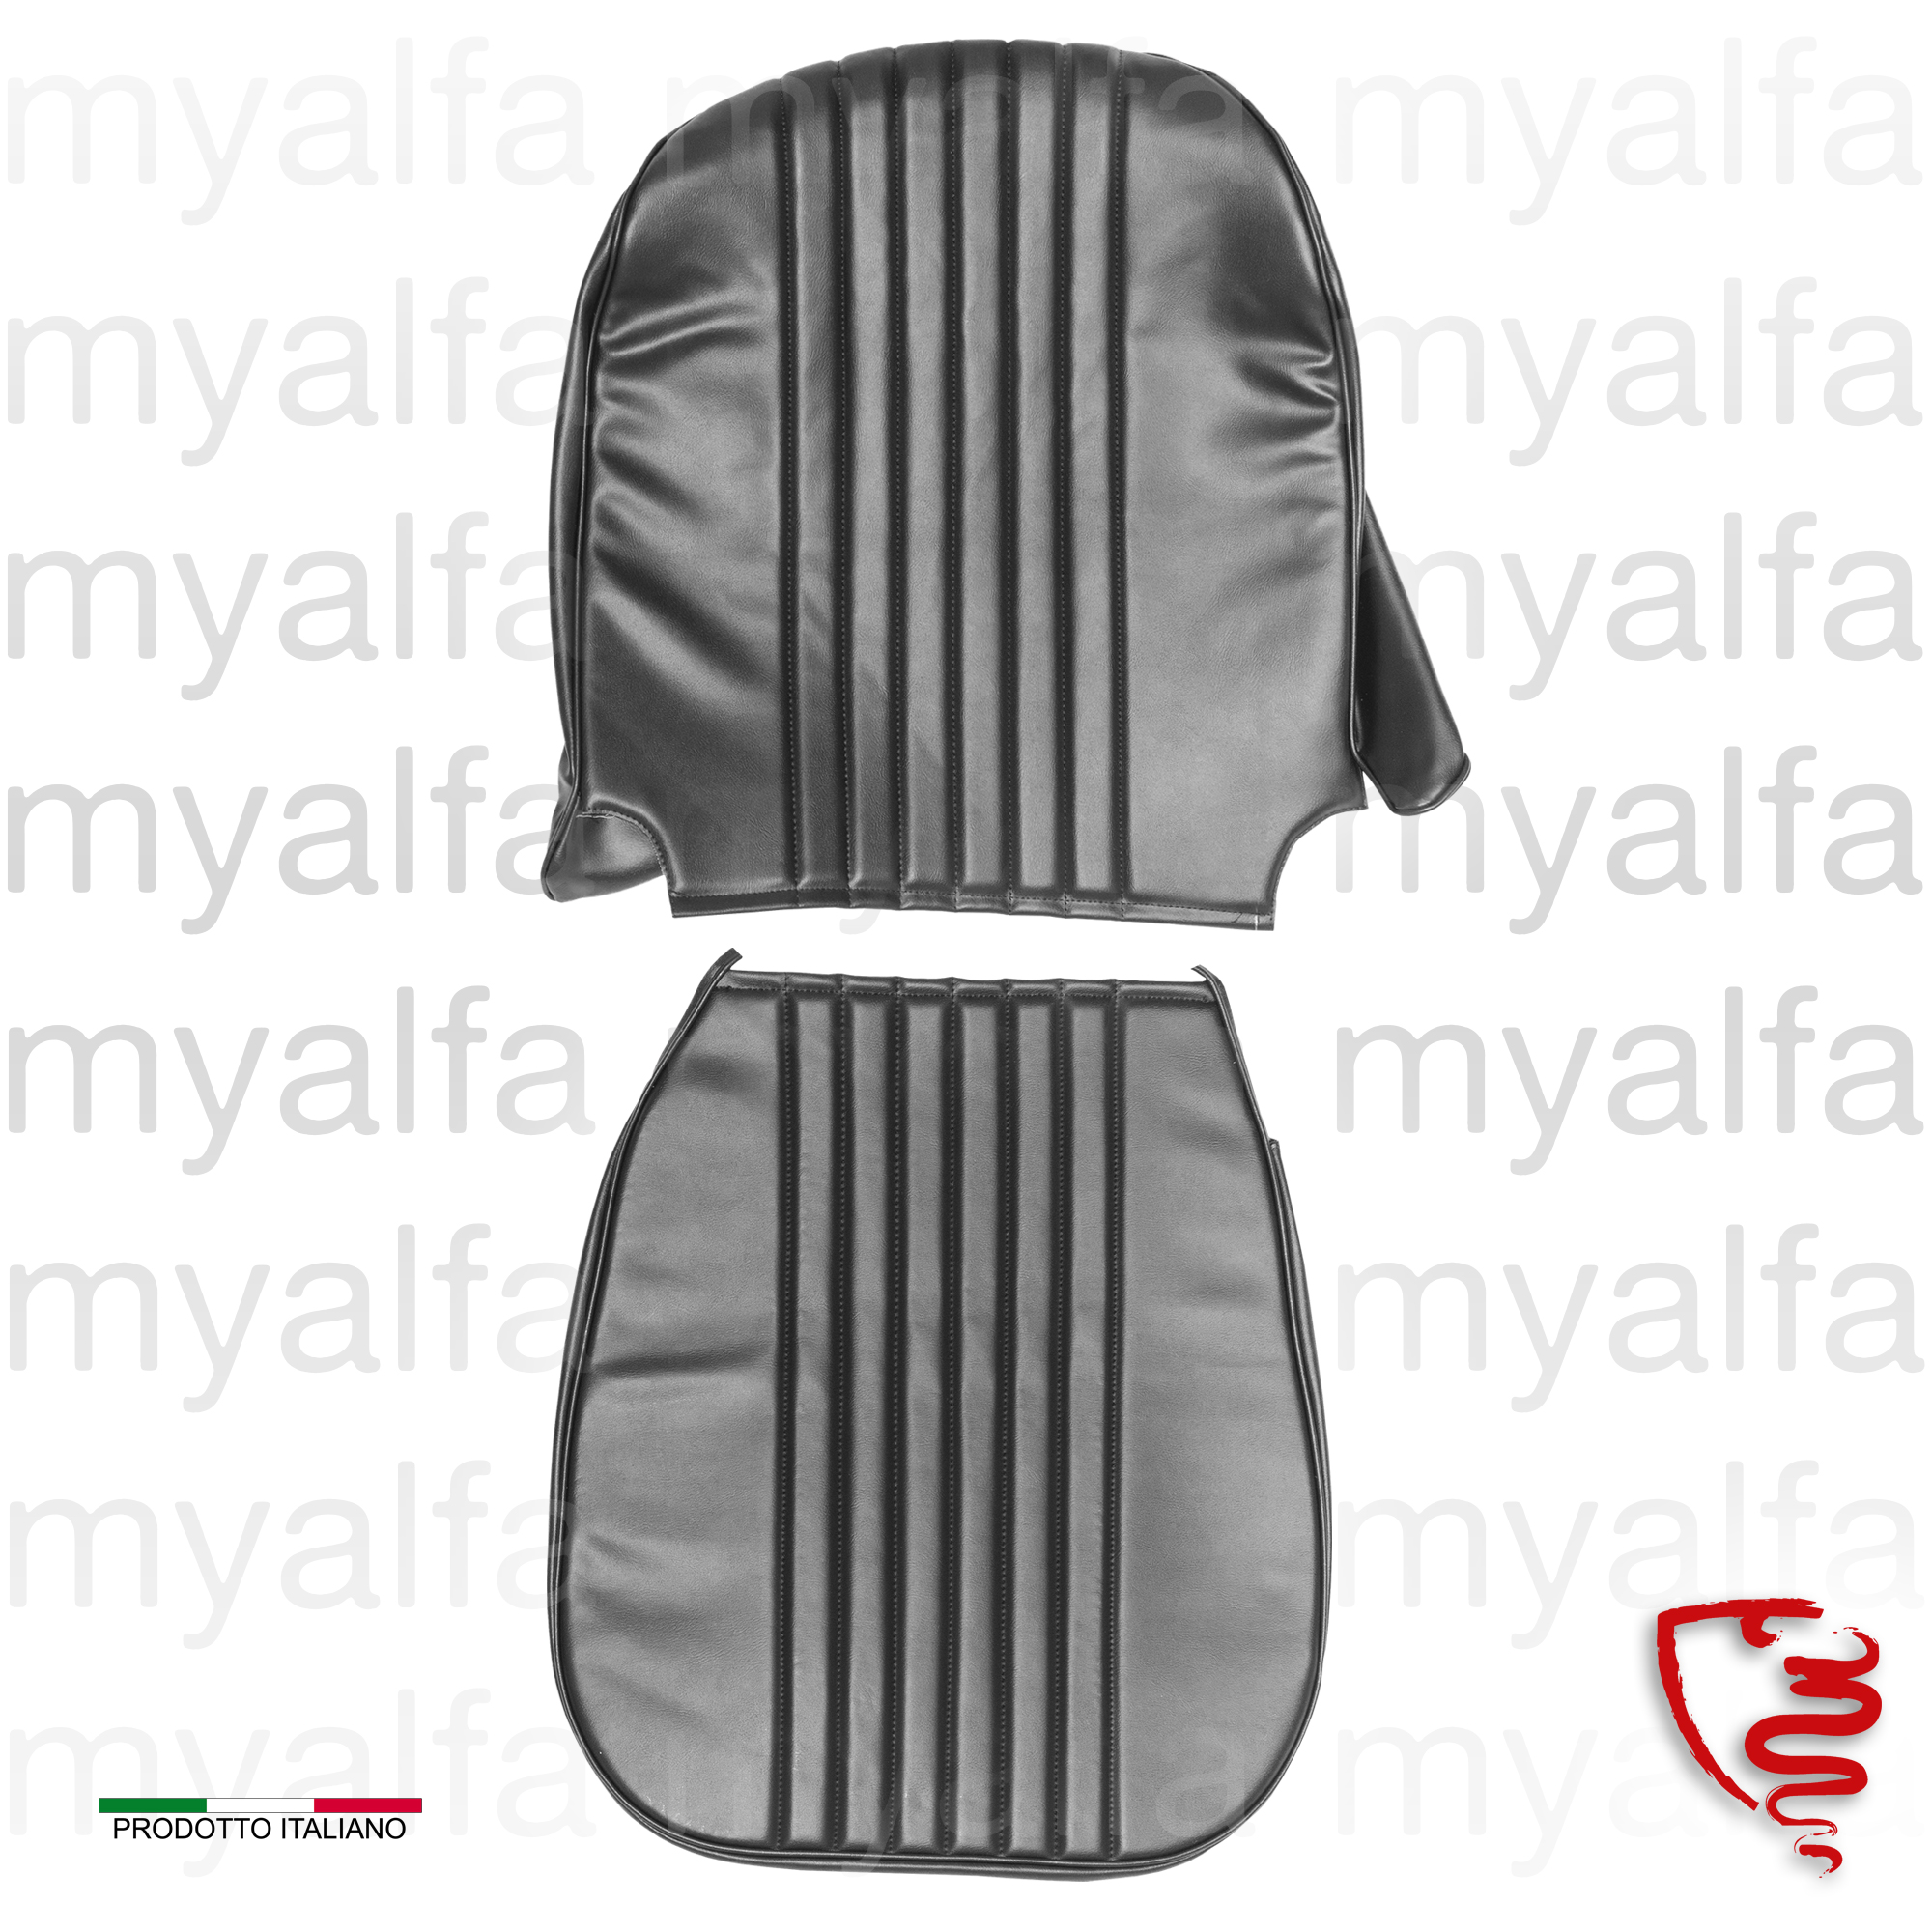 Jg. covers bank drt. GT Junior 1300/1600 - Black for 105/115, Coupe, Junior, Interior, Seats, Seat covers